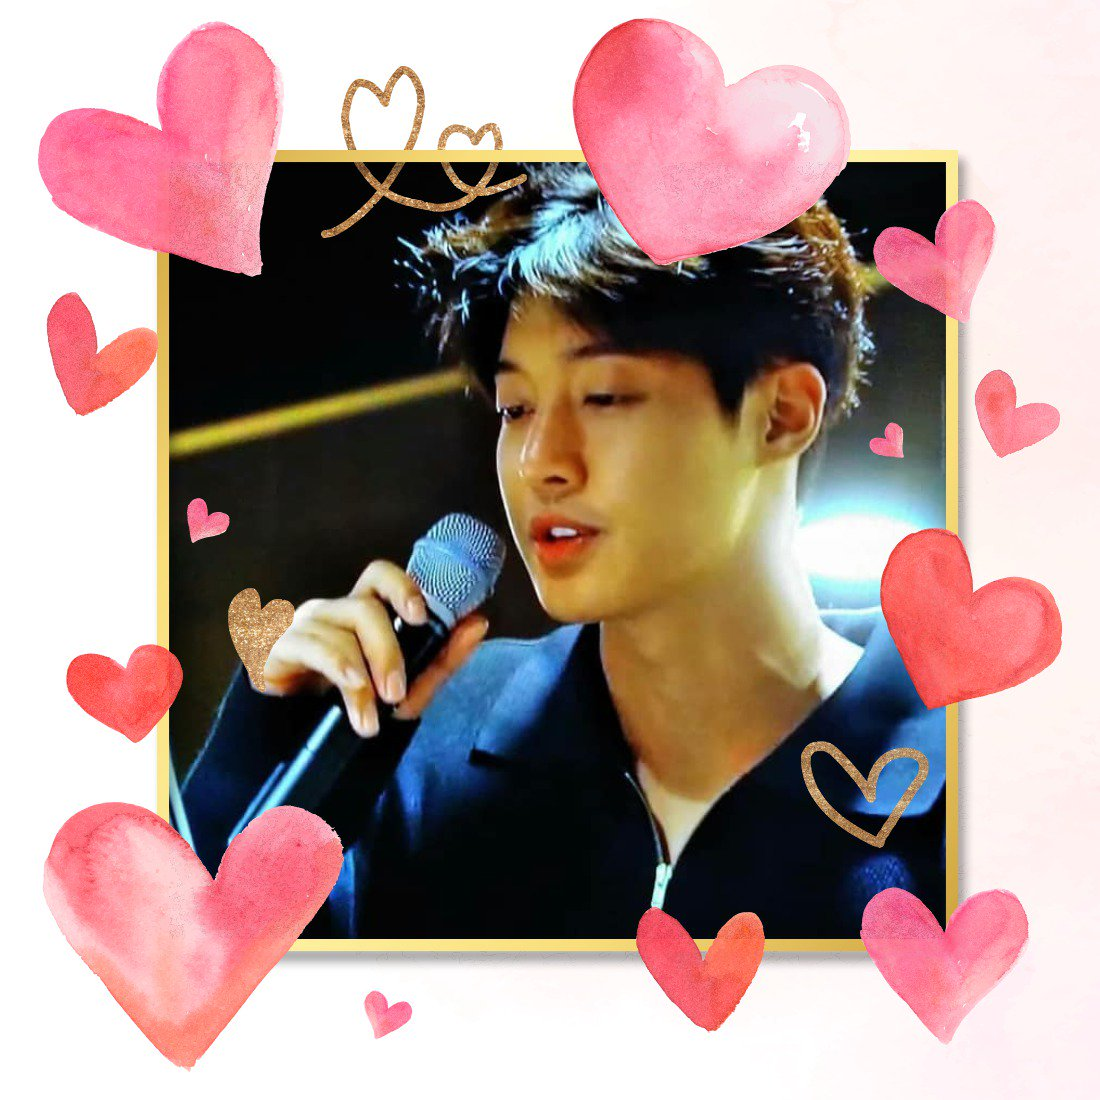 Of Course Mostly when it 's cooked by HJ Happy afternoon to you my darling i hope you feel rested today kisskiss LYF <br>http://pic.twitter.com/iKjaATfsaw